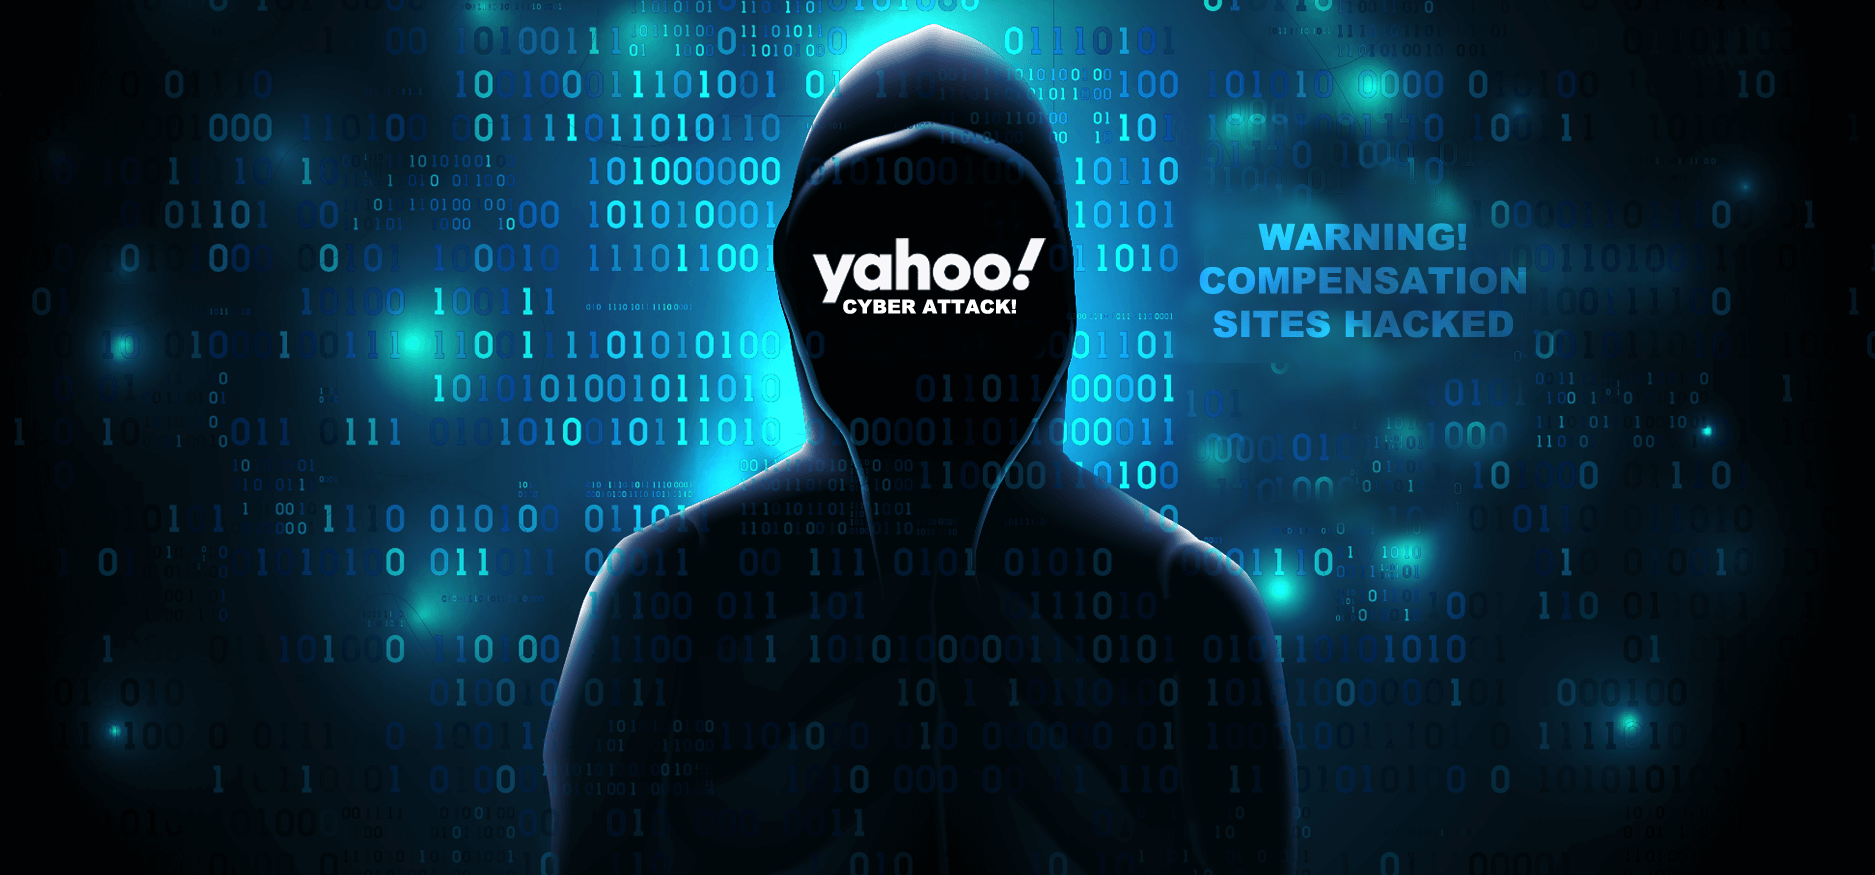 Yahoo - Cyber Attack 2012-16 You still have time to claim!